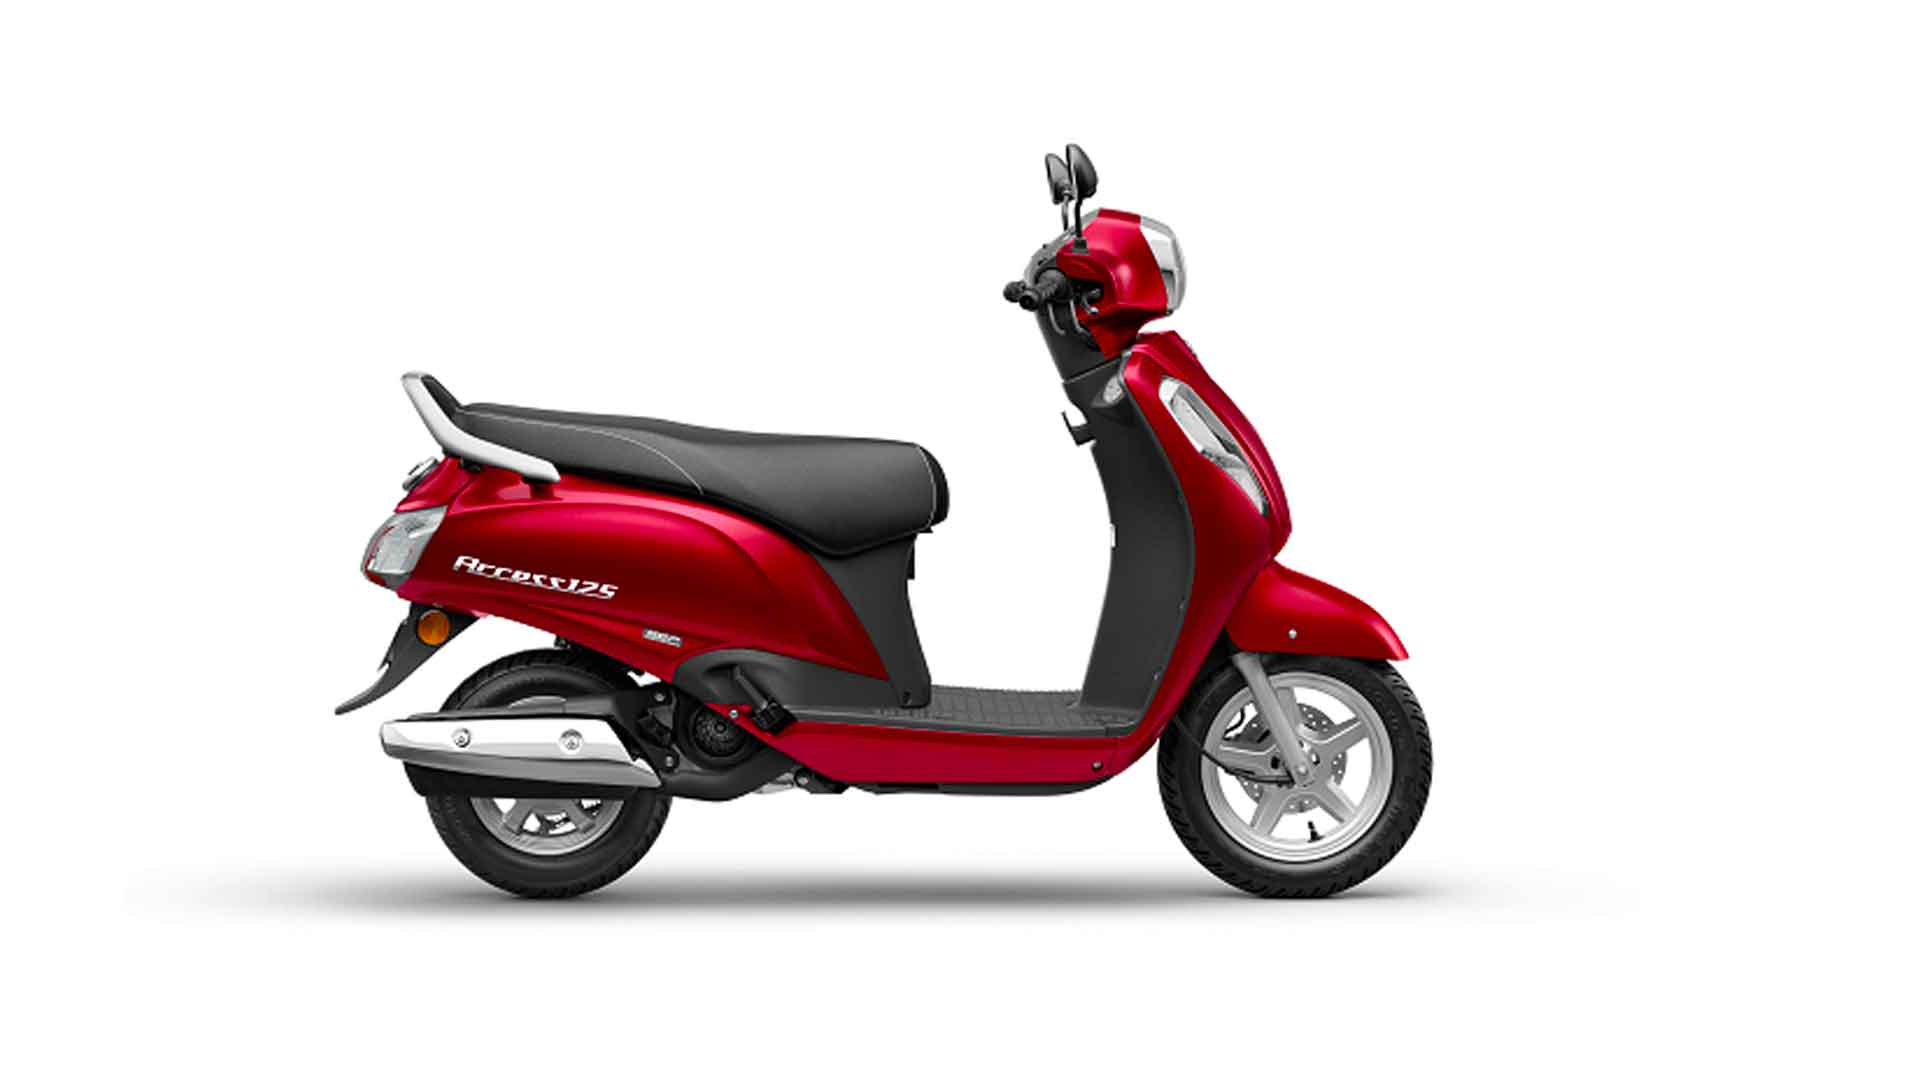 Suzuki Access 125 Price In Bangladesh 2021